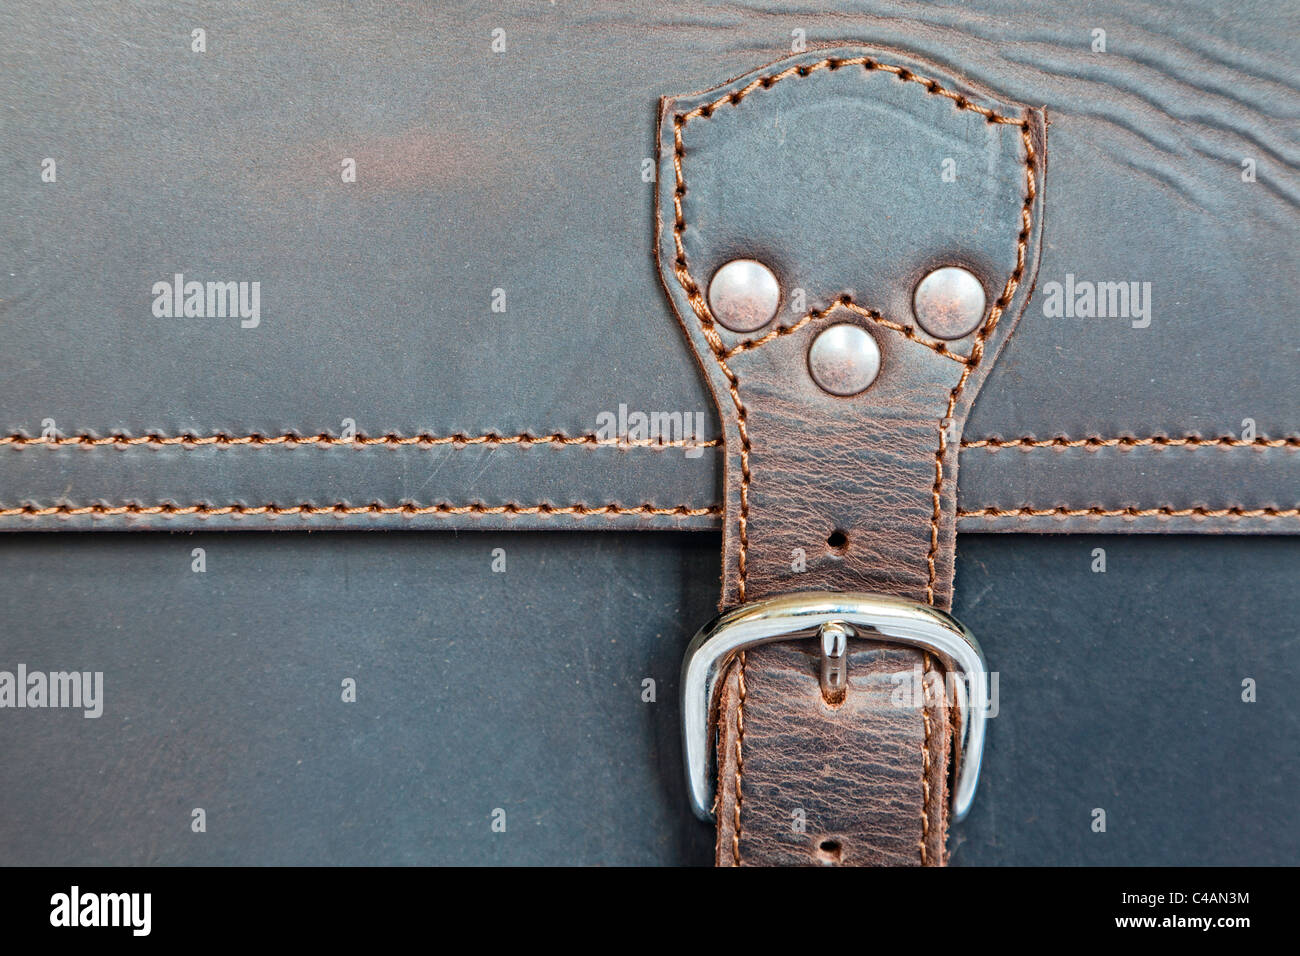 Closeup of a leather briefcase - Stock Image